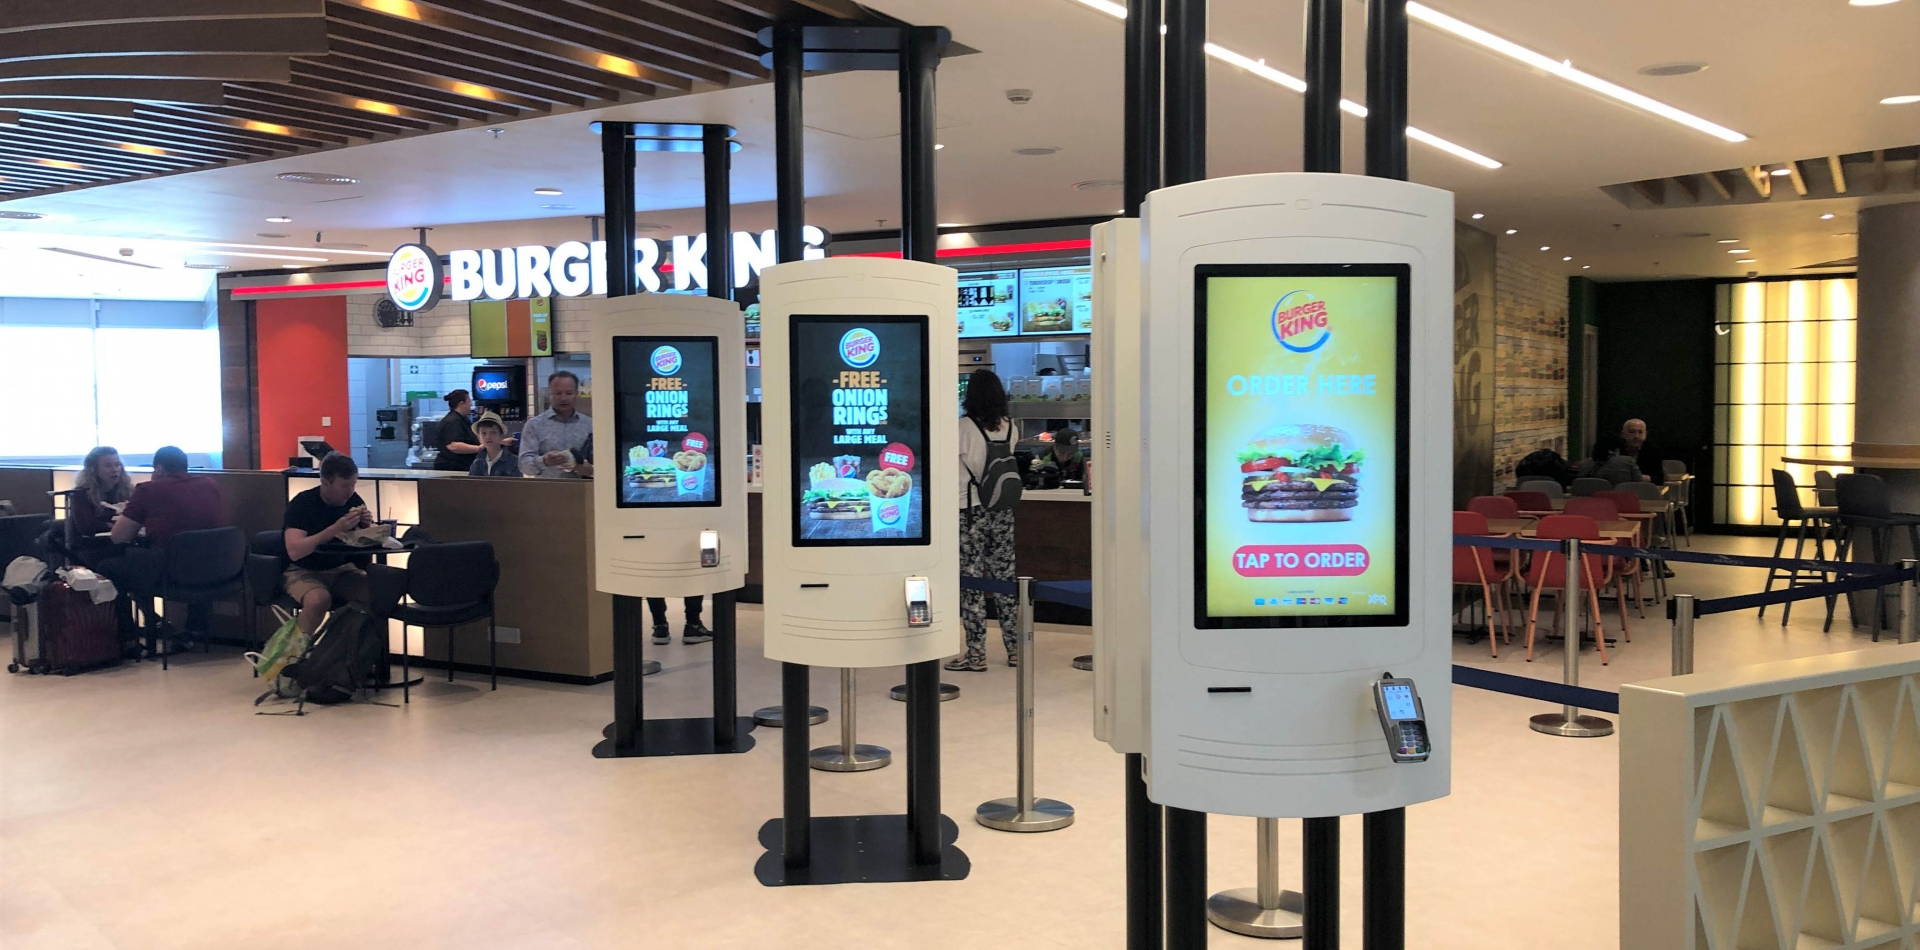 Kiosks for Quick Service Restaurants (QSR)